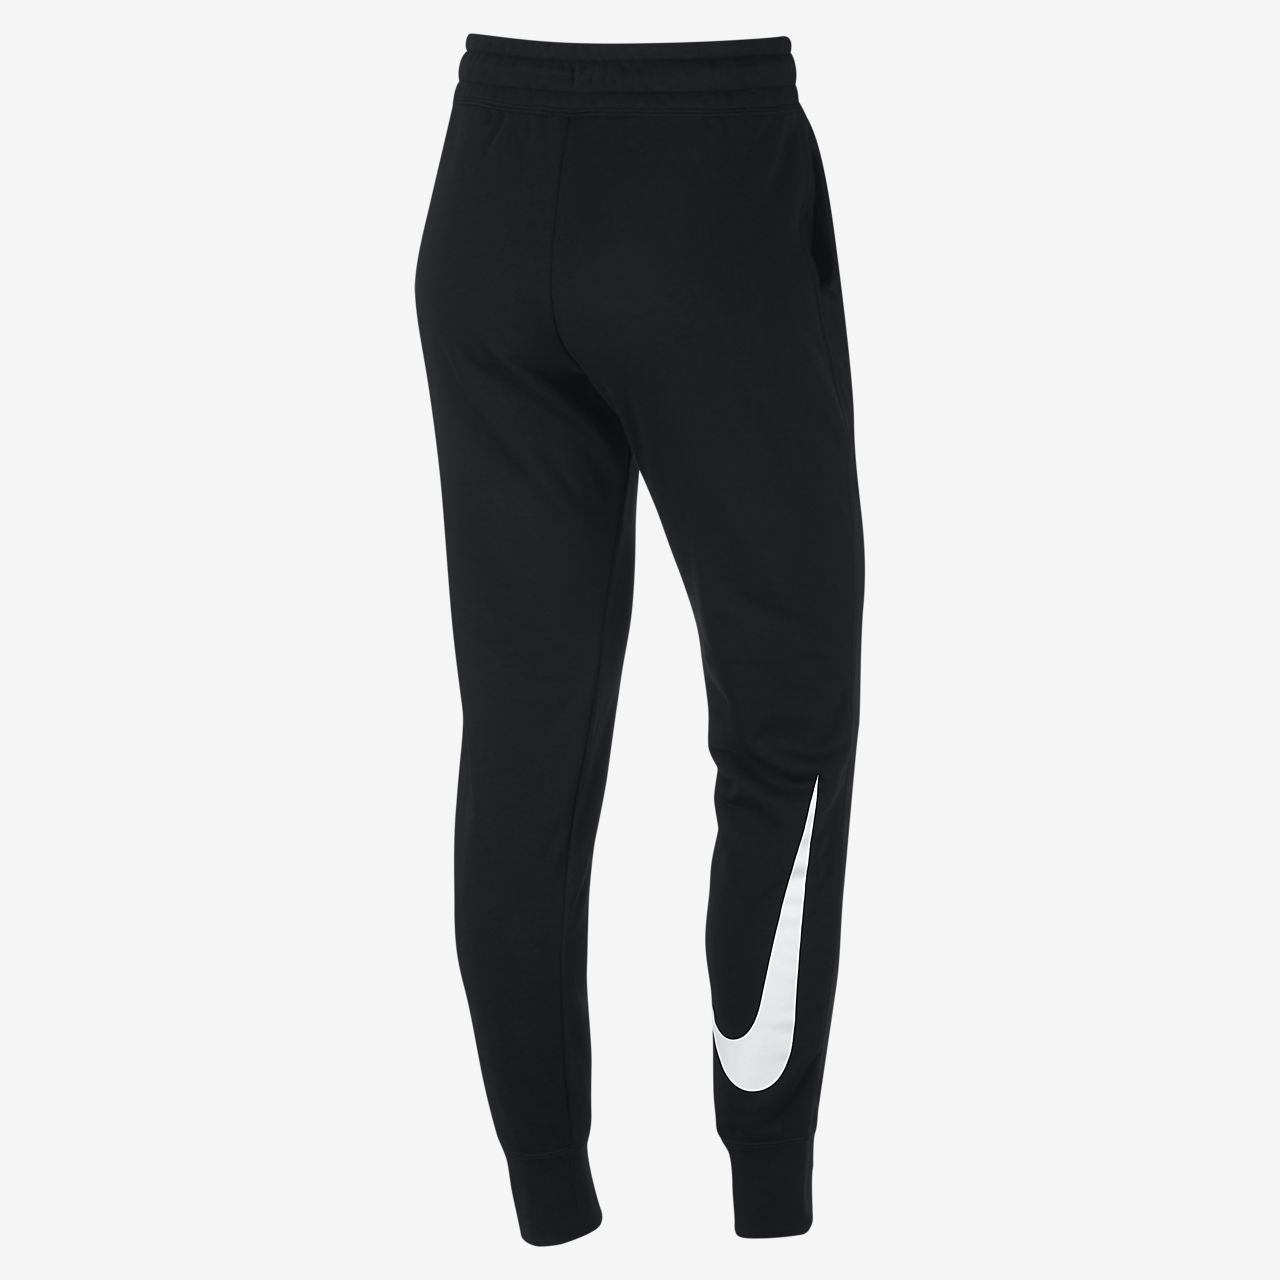 c84248018fb94 Nike Sportswear Women's Swoosh Fleece Pants. Nike.com